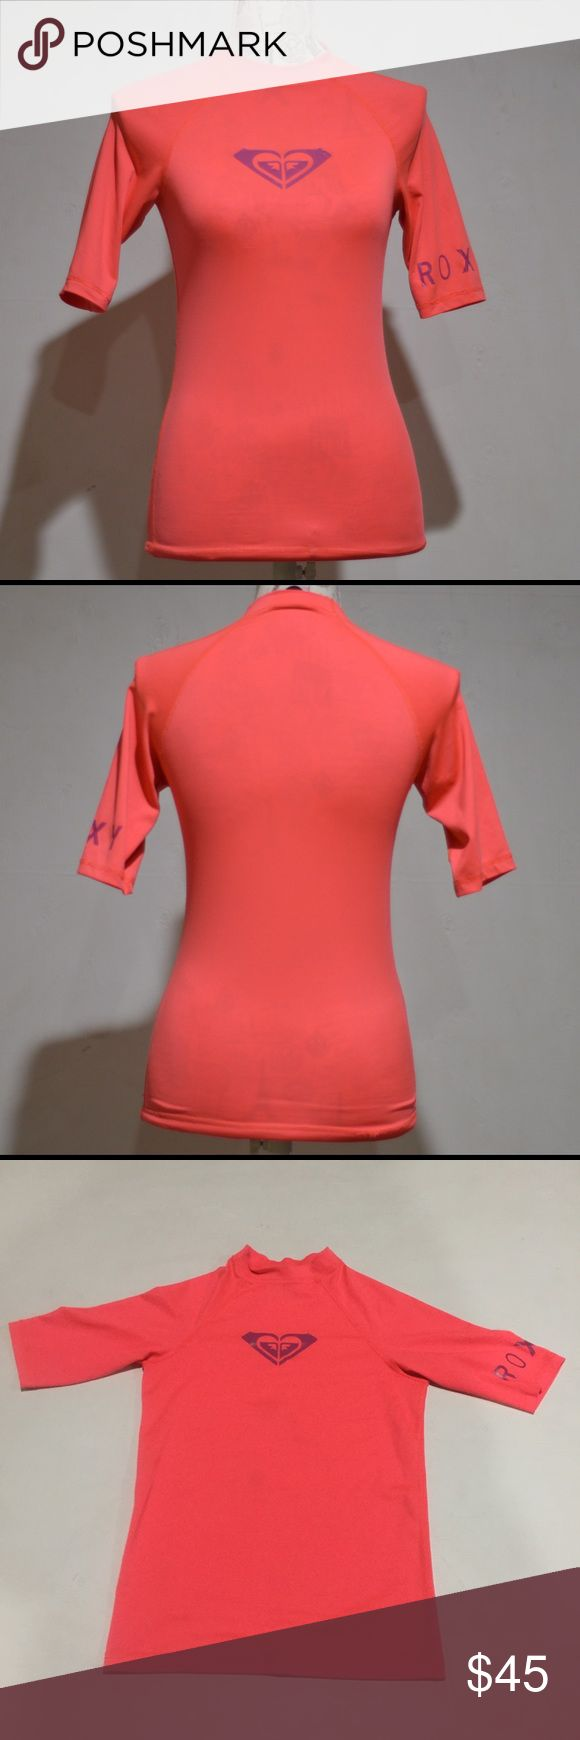 "💙Girls Roxy Rash-Guard Coral Pink Coral Roxy rash-guard Short sleeve. Fits adult small. Lots of stretch.  Defects: Faint discoloration on front, back hip seam popped. See pics. Condition:  Great  Length: 22"" shoulder to hem Bust: 15"" flat across Neck Opening:  7"" flat across  Model Lucy Shoulders 30"" Bust 35"" Waist 28"" Hips 35.5""  Smoke free home with cats and dogs. Washed in All Free & Clear. No Dry clean or stain treatments due to skin allergy. Roxy Swim Rashguards"